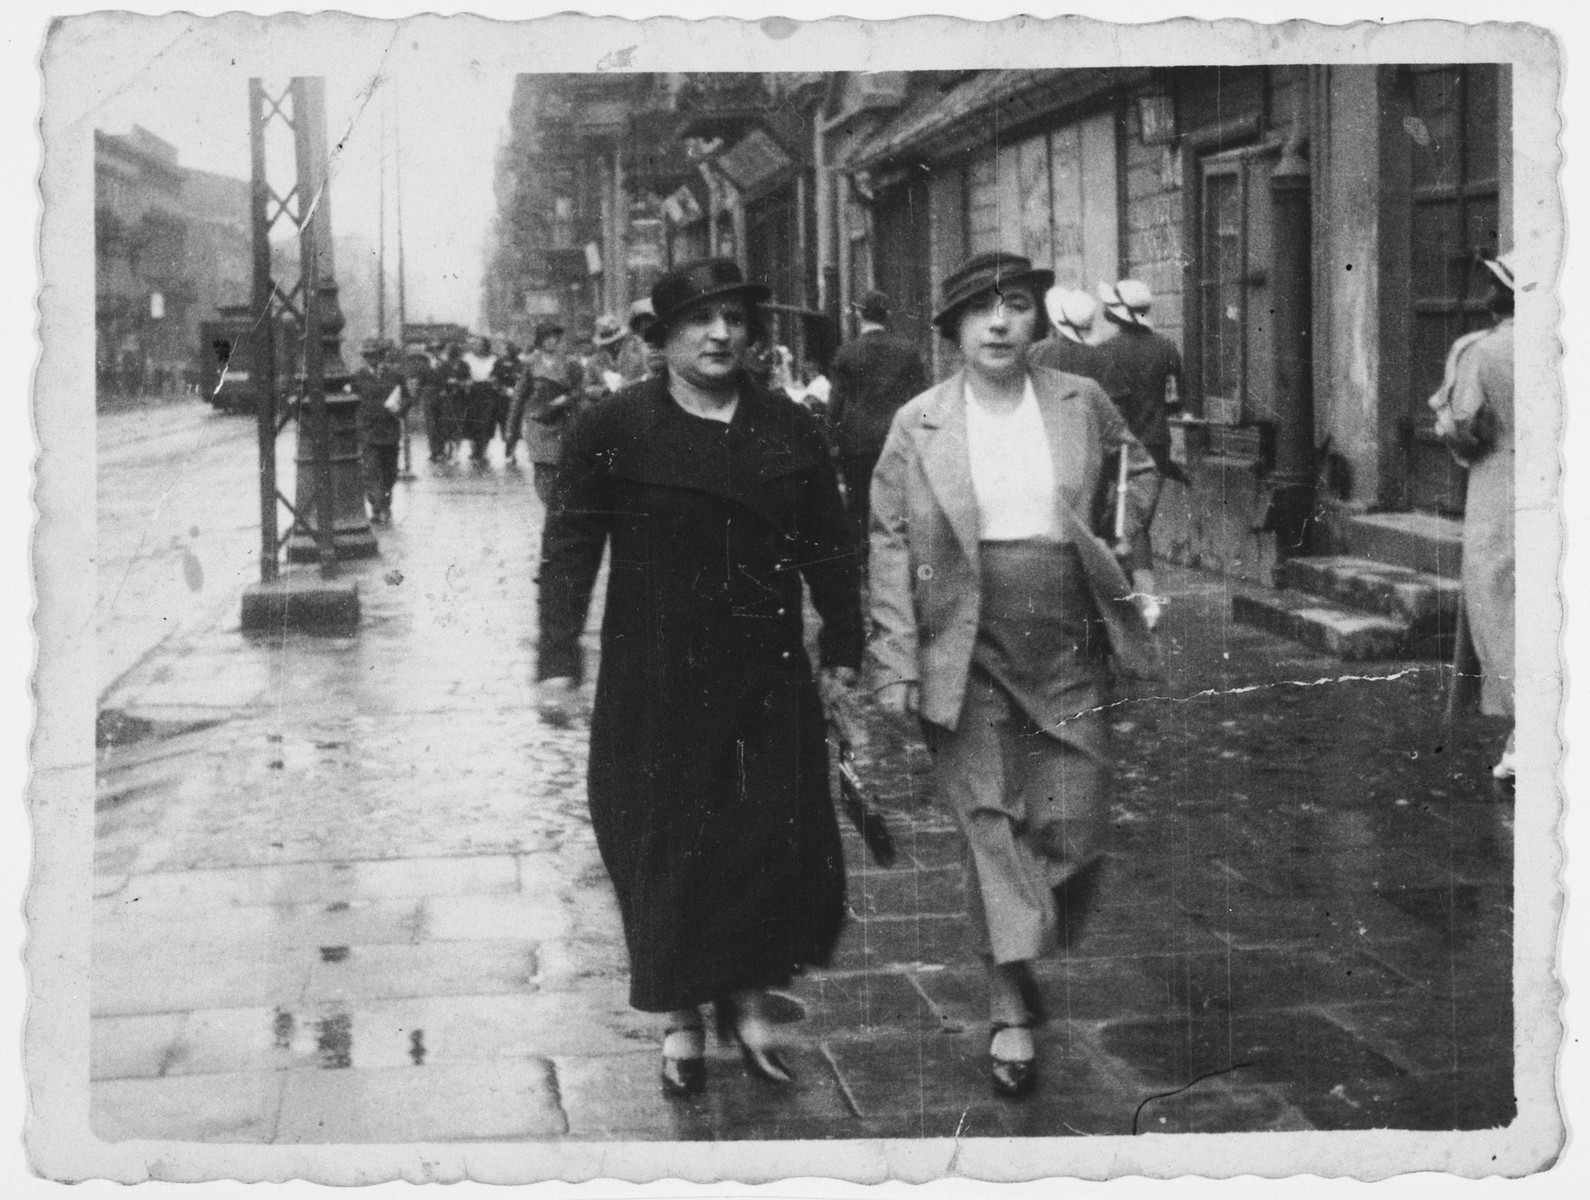 Bluma Shattan walks down a commercial street in Lodz with her sister-in-law Rivka